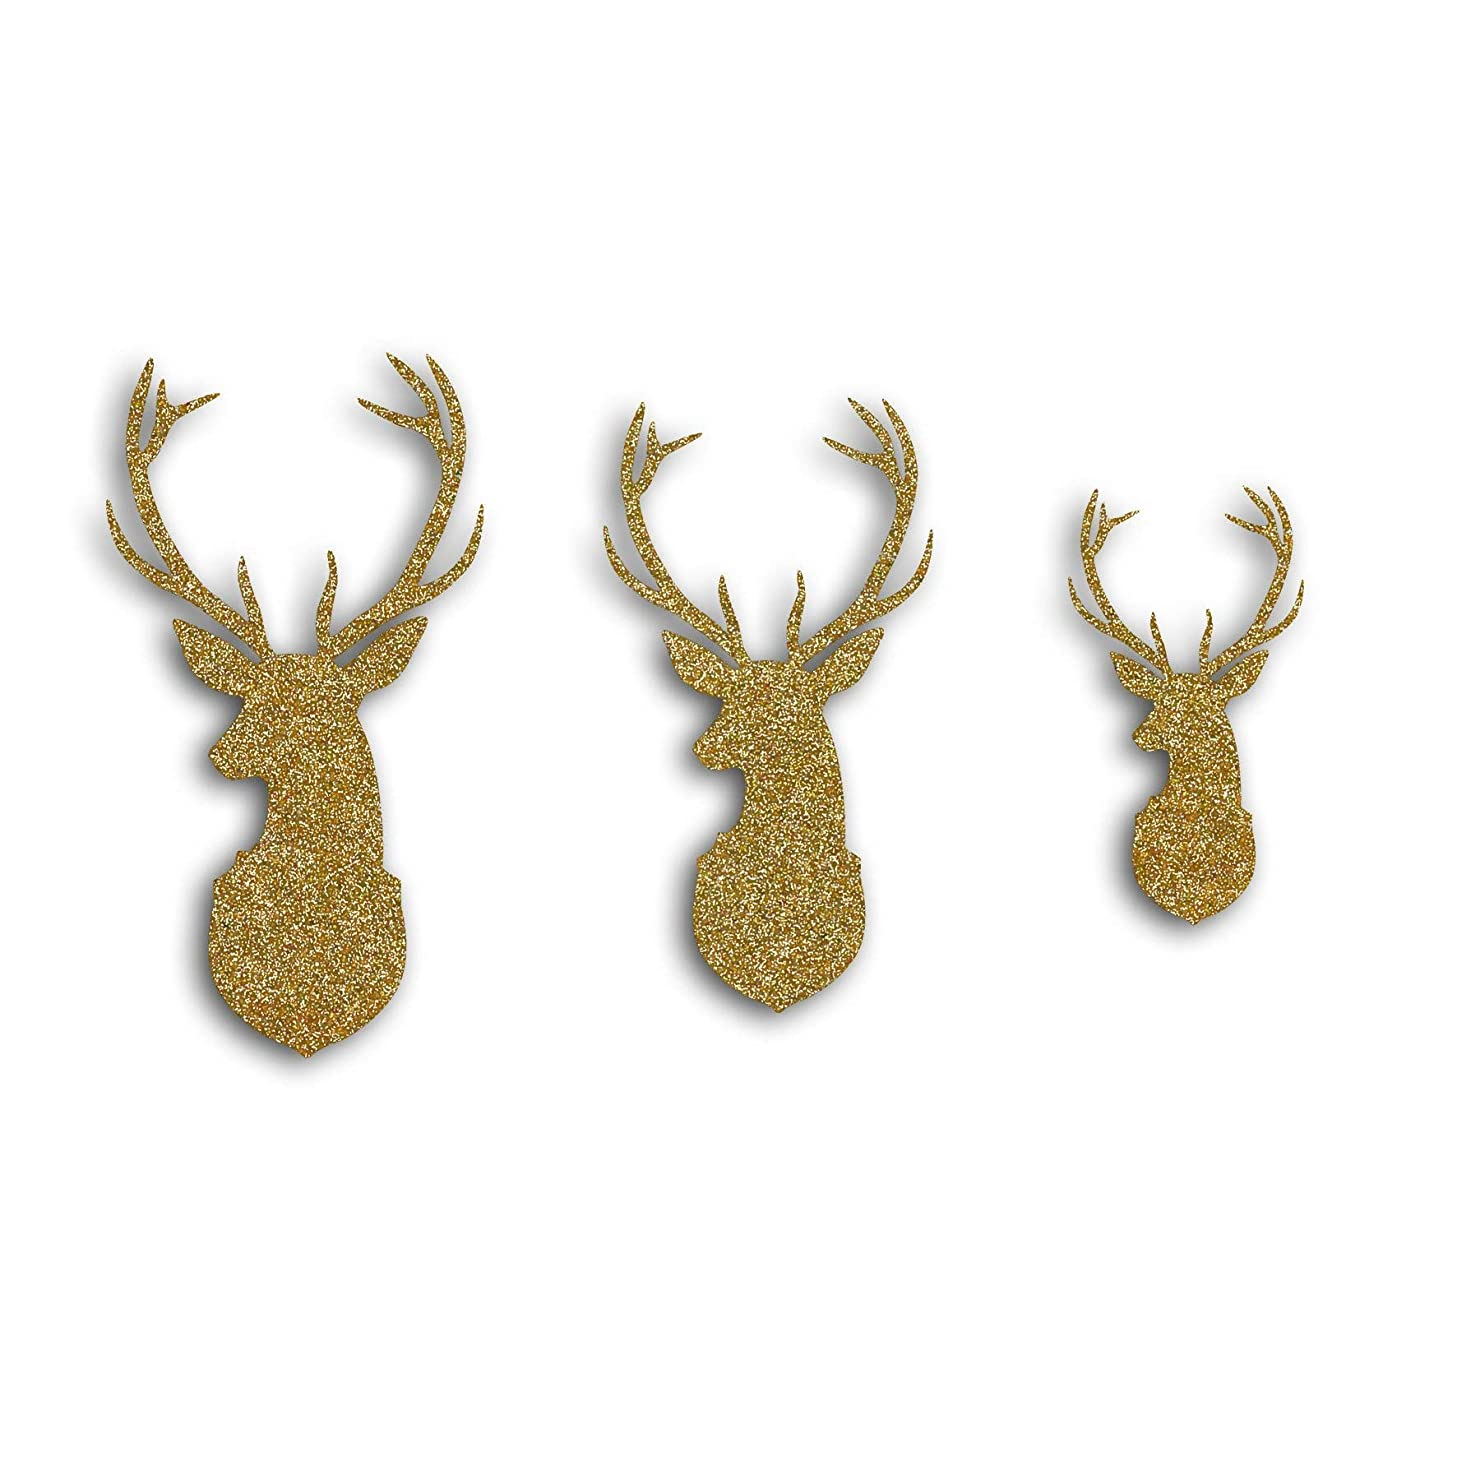 Toga Reindeers Cut Shapes with Glitter - Golden